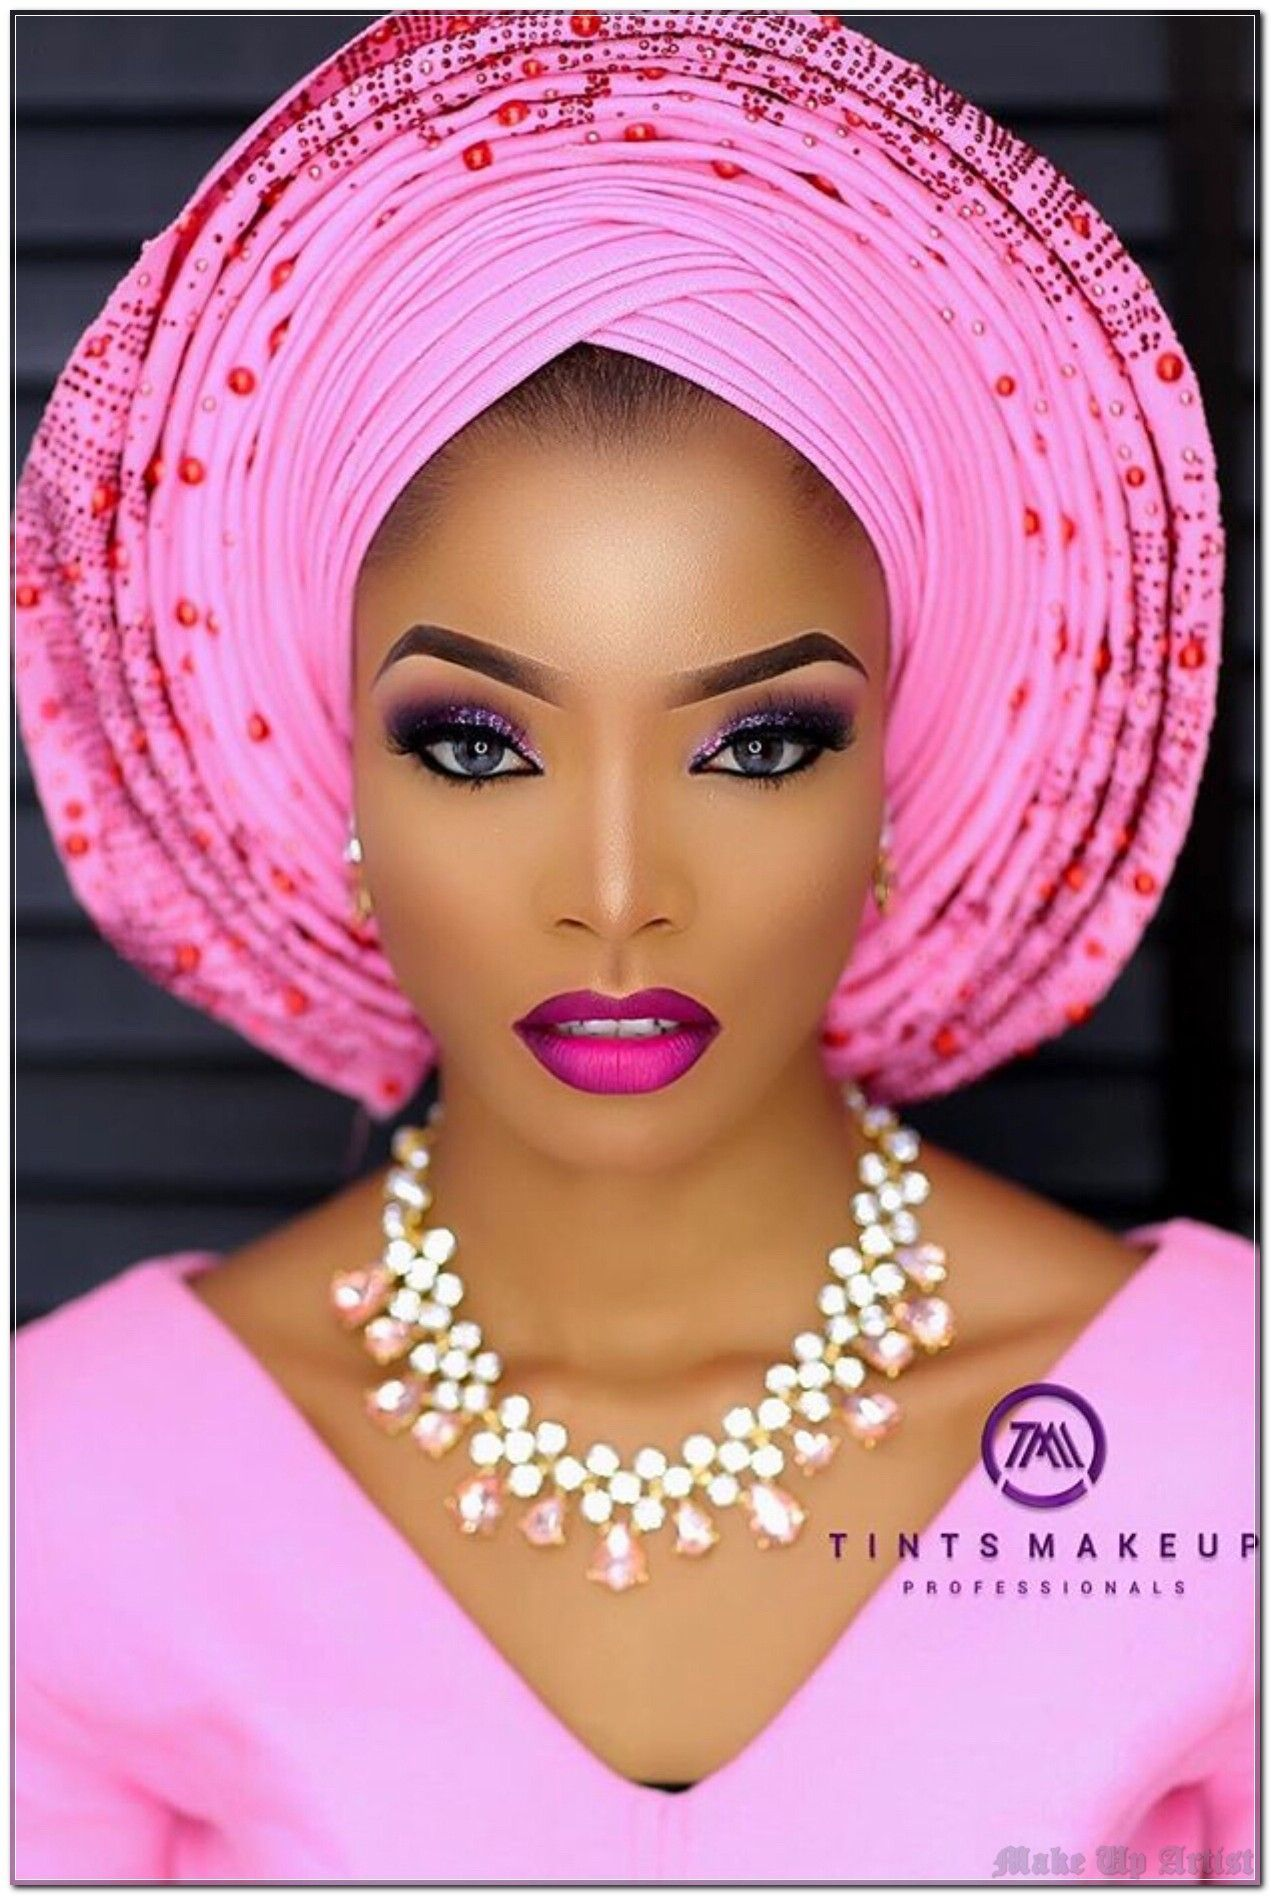 Top 10 Websites To Look For Make Up Artist In 2020 African Head Dress Beauty African Makeup